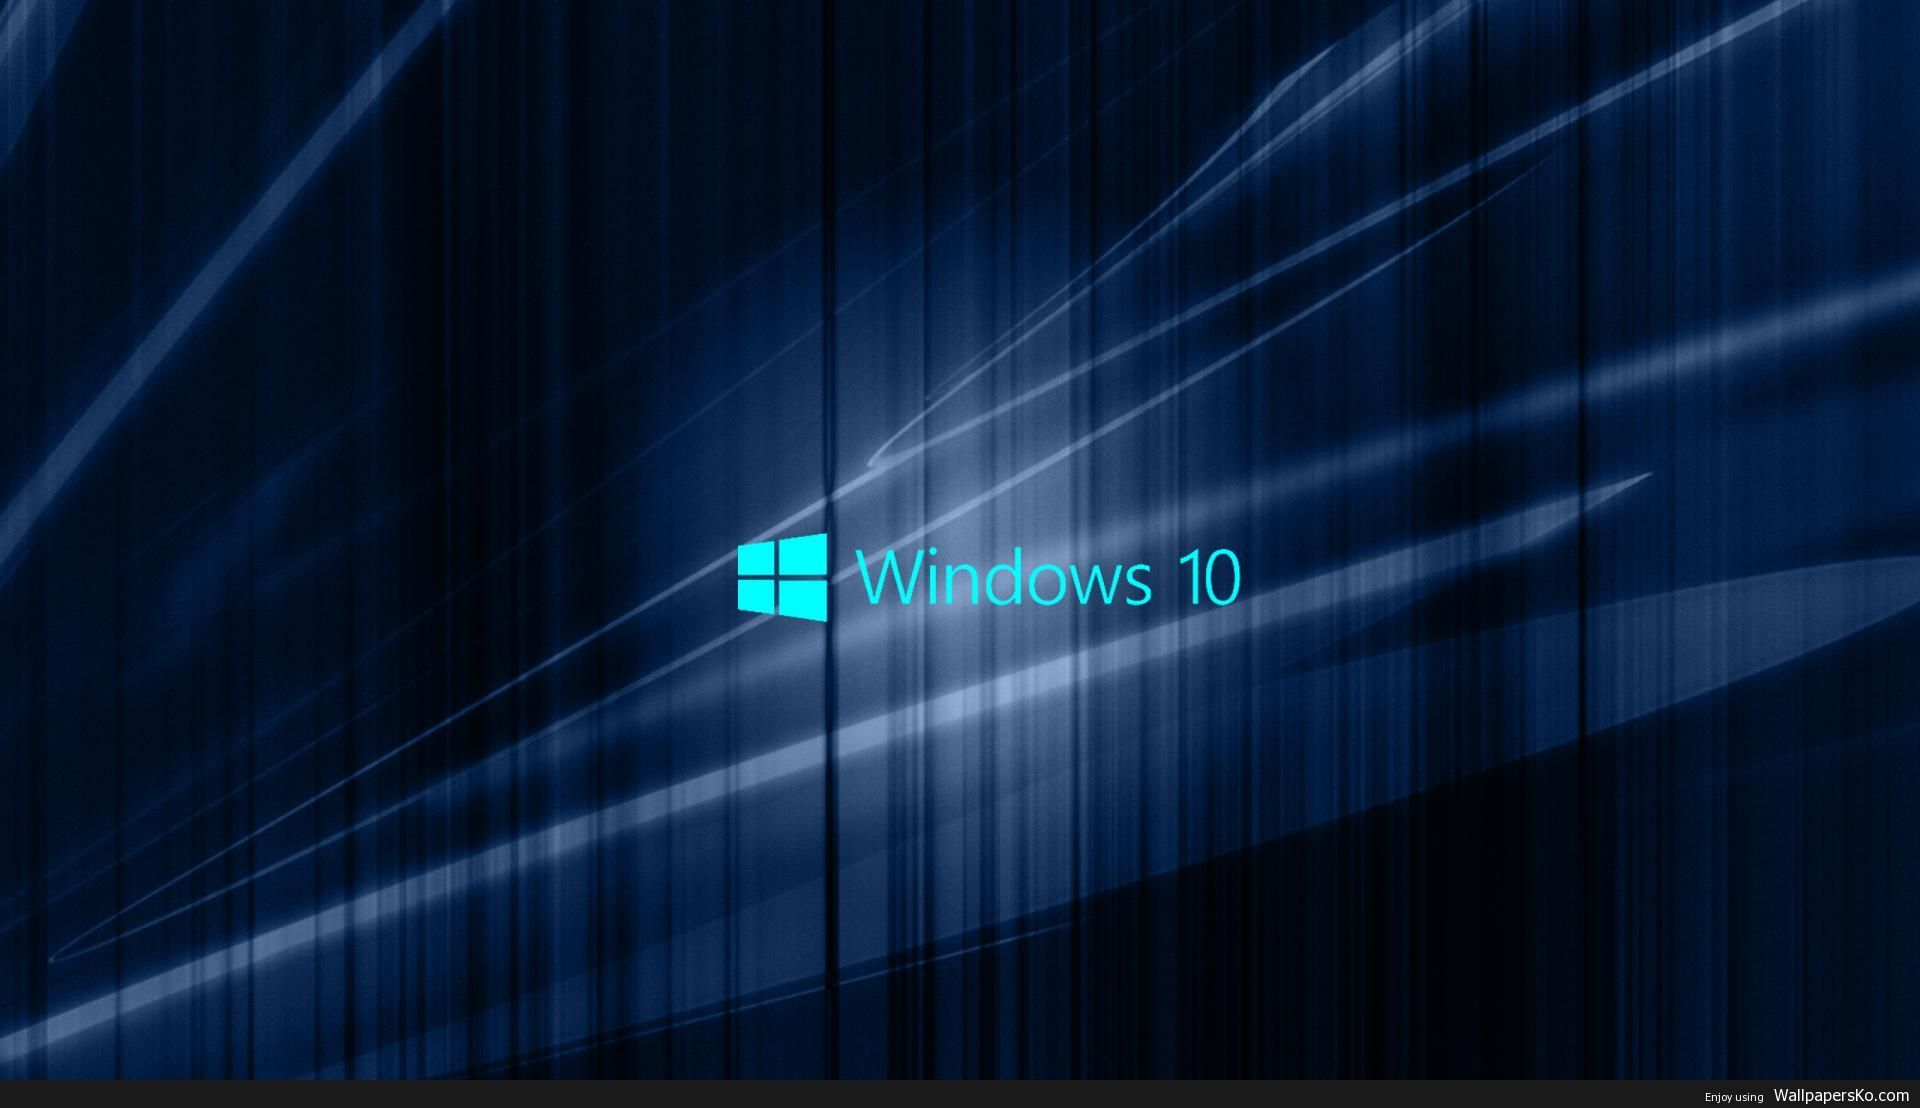 Windows 10 Pro Wallpaper Http Wallpapersko Com Windows 10 Pro